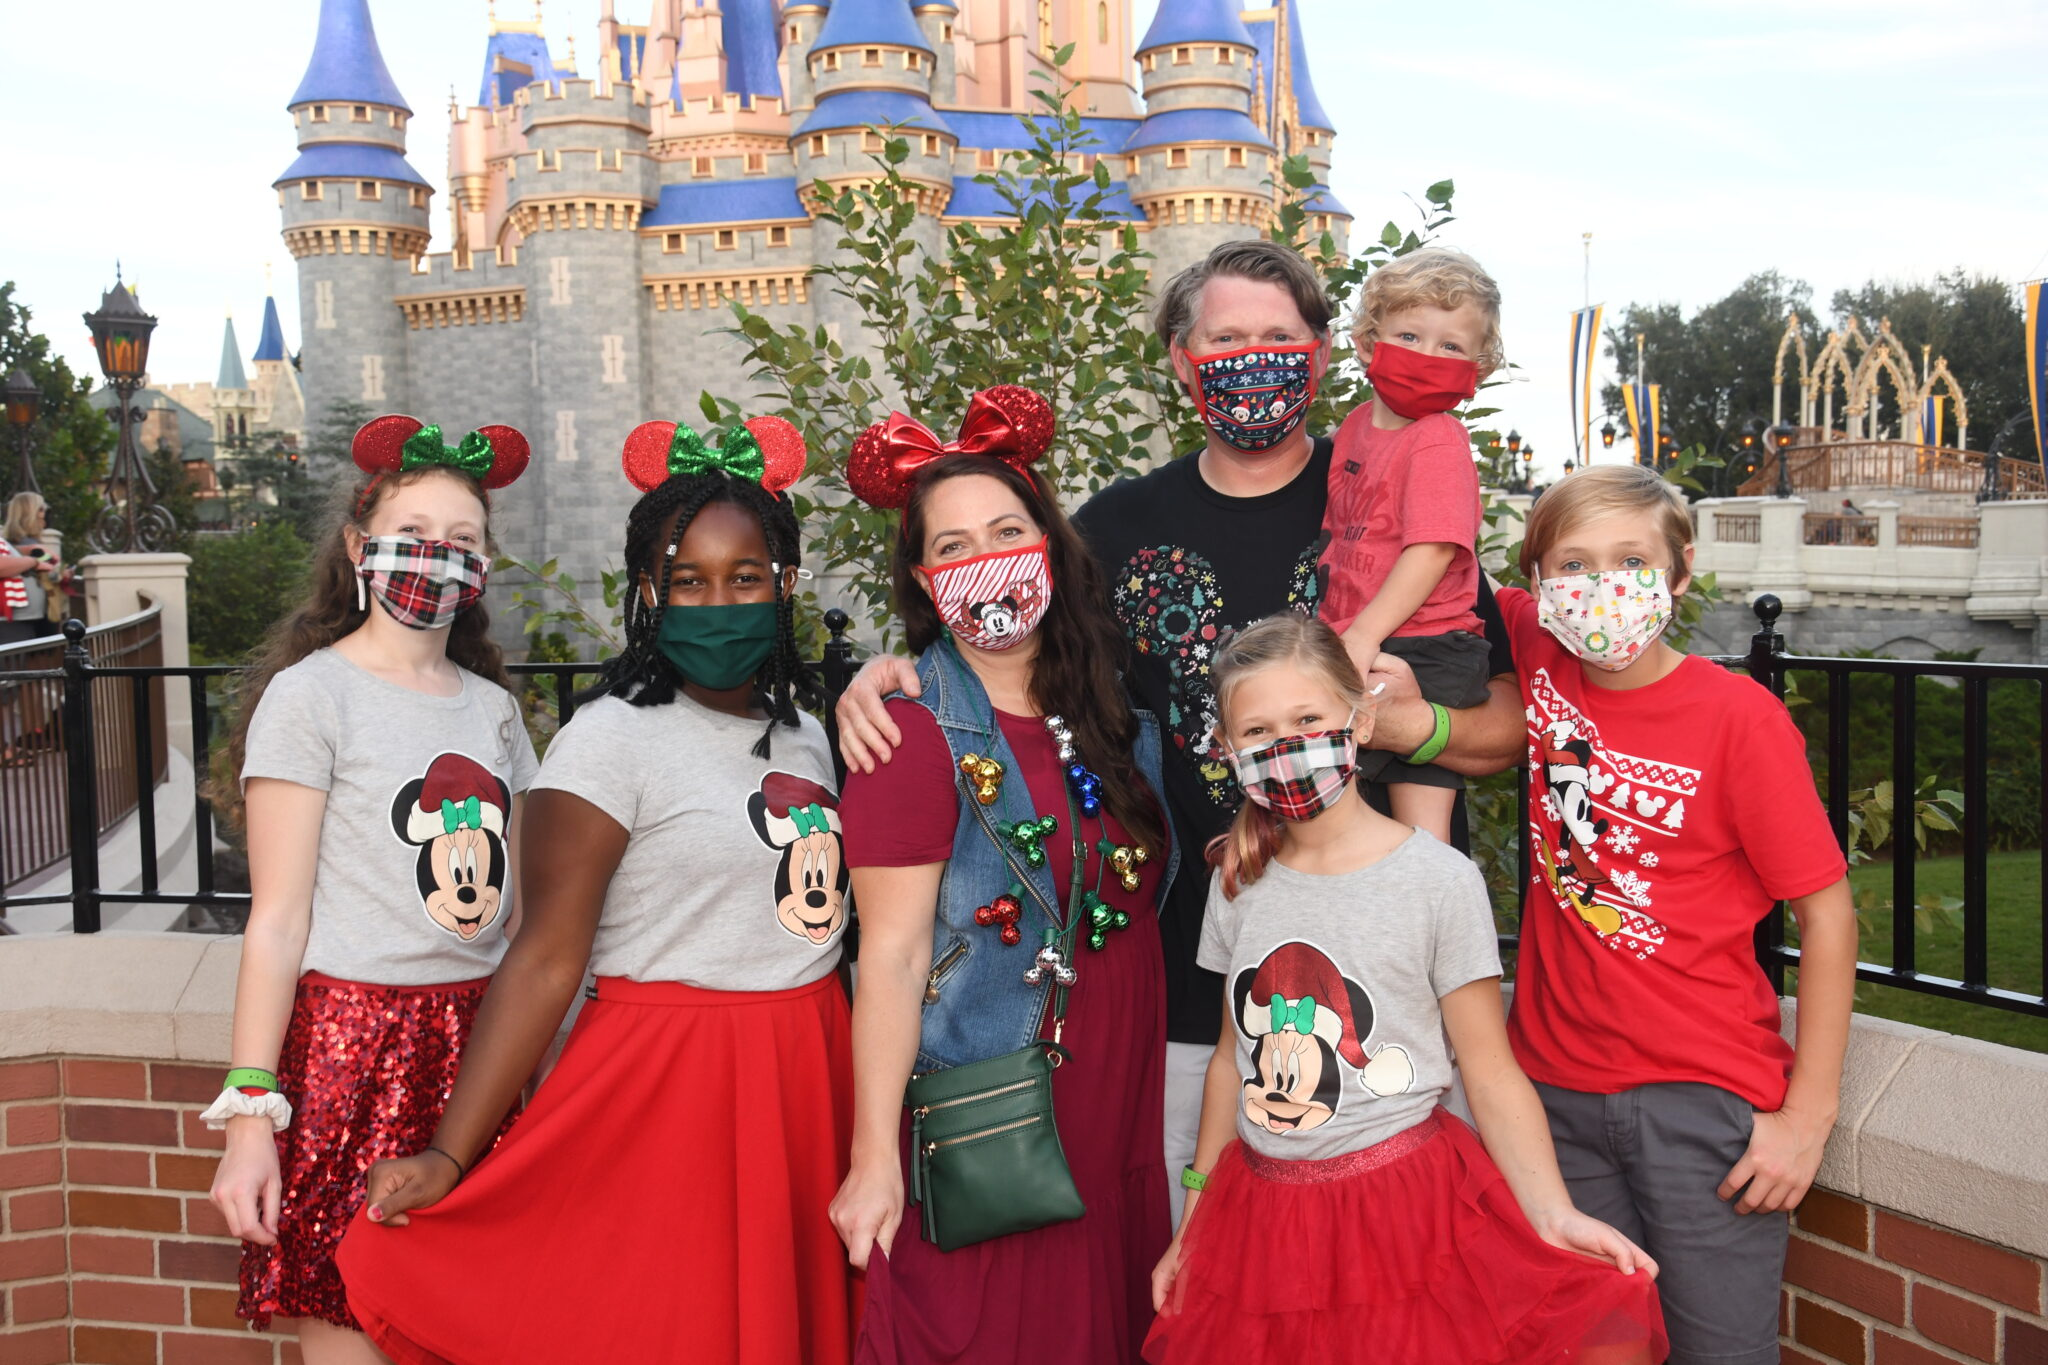 Is it Safe to Visit Disney World During a Pandemic? All Things with Purpose Sarah Lemp 9